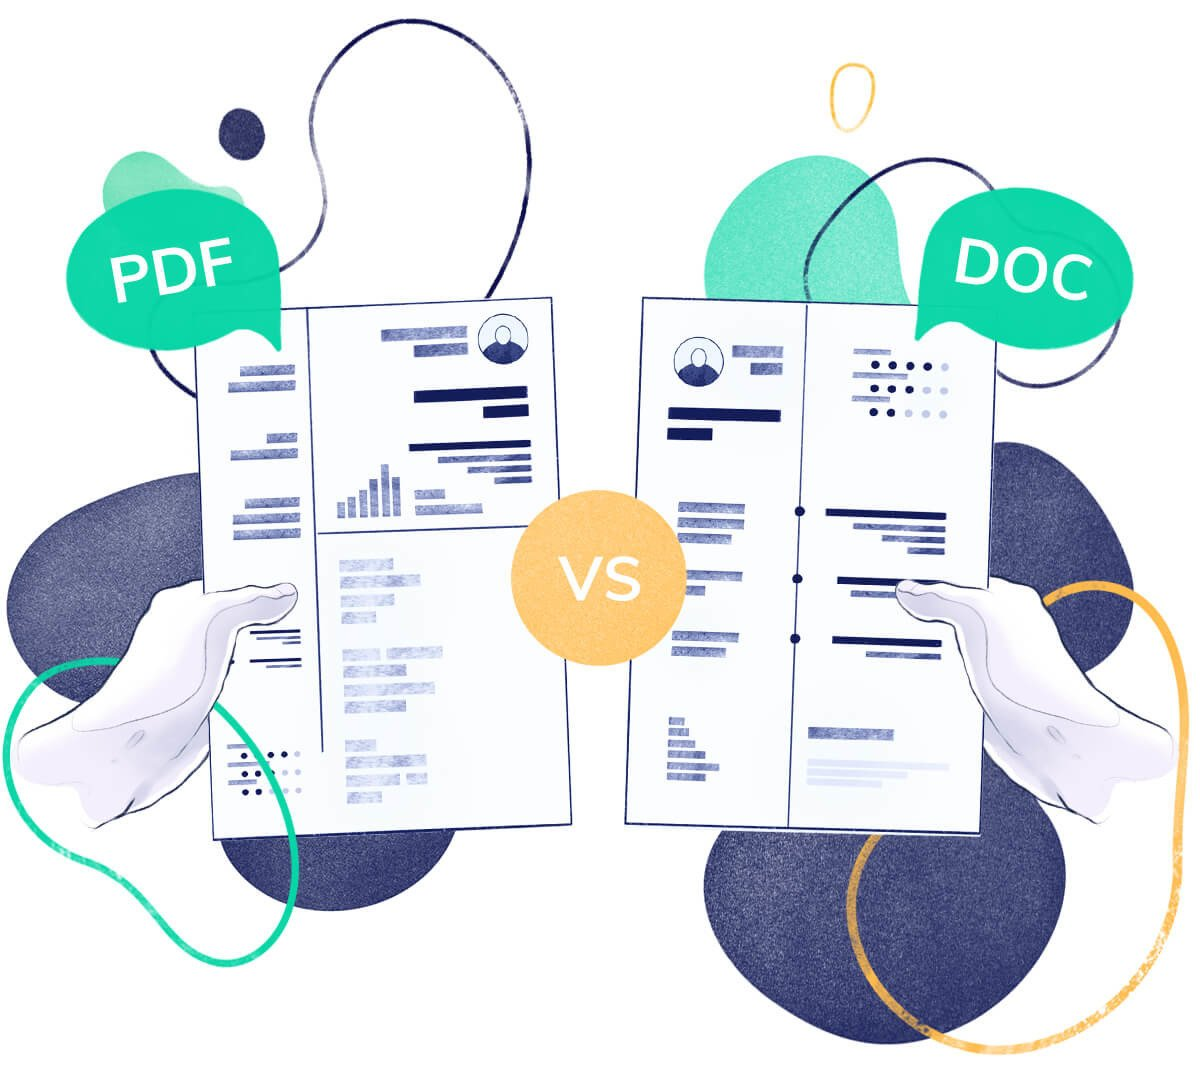 CV: PDF or DOC? Which File Type Works Best